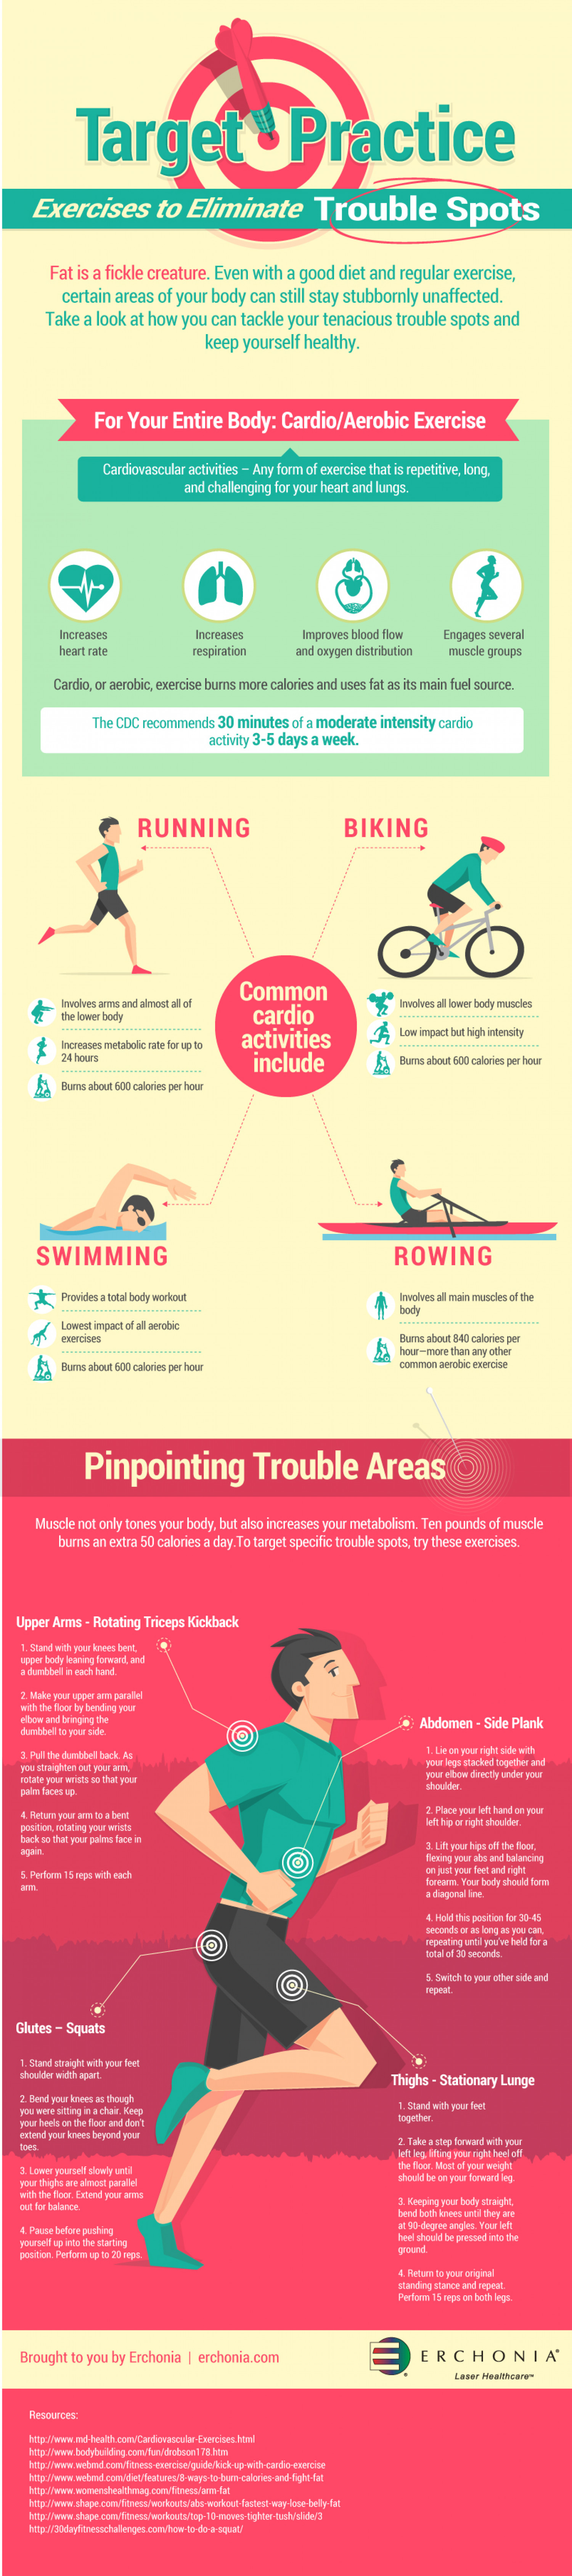 Target Practice: Exercises to Eliminate Trouble Spots Infographic